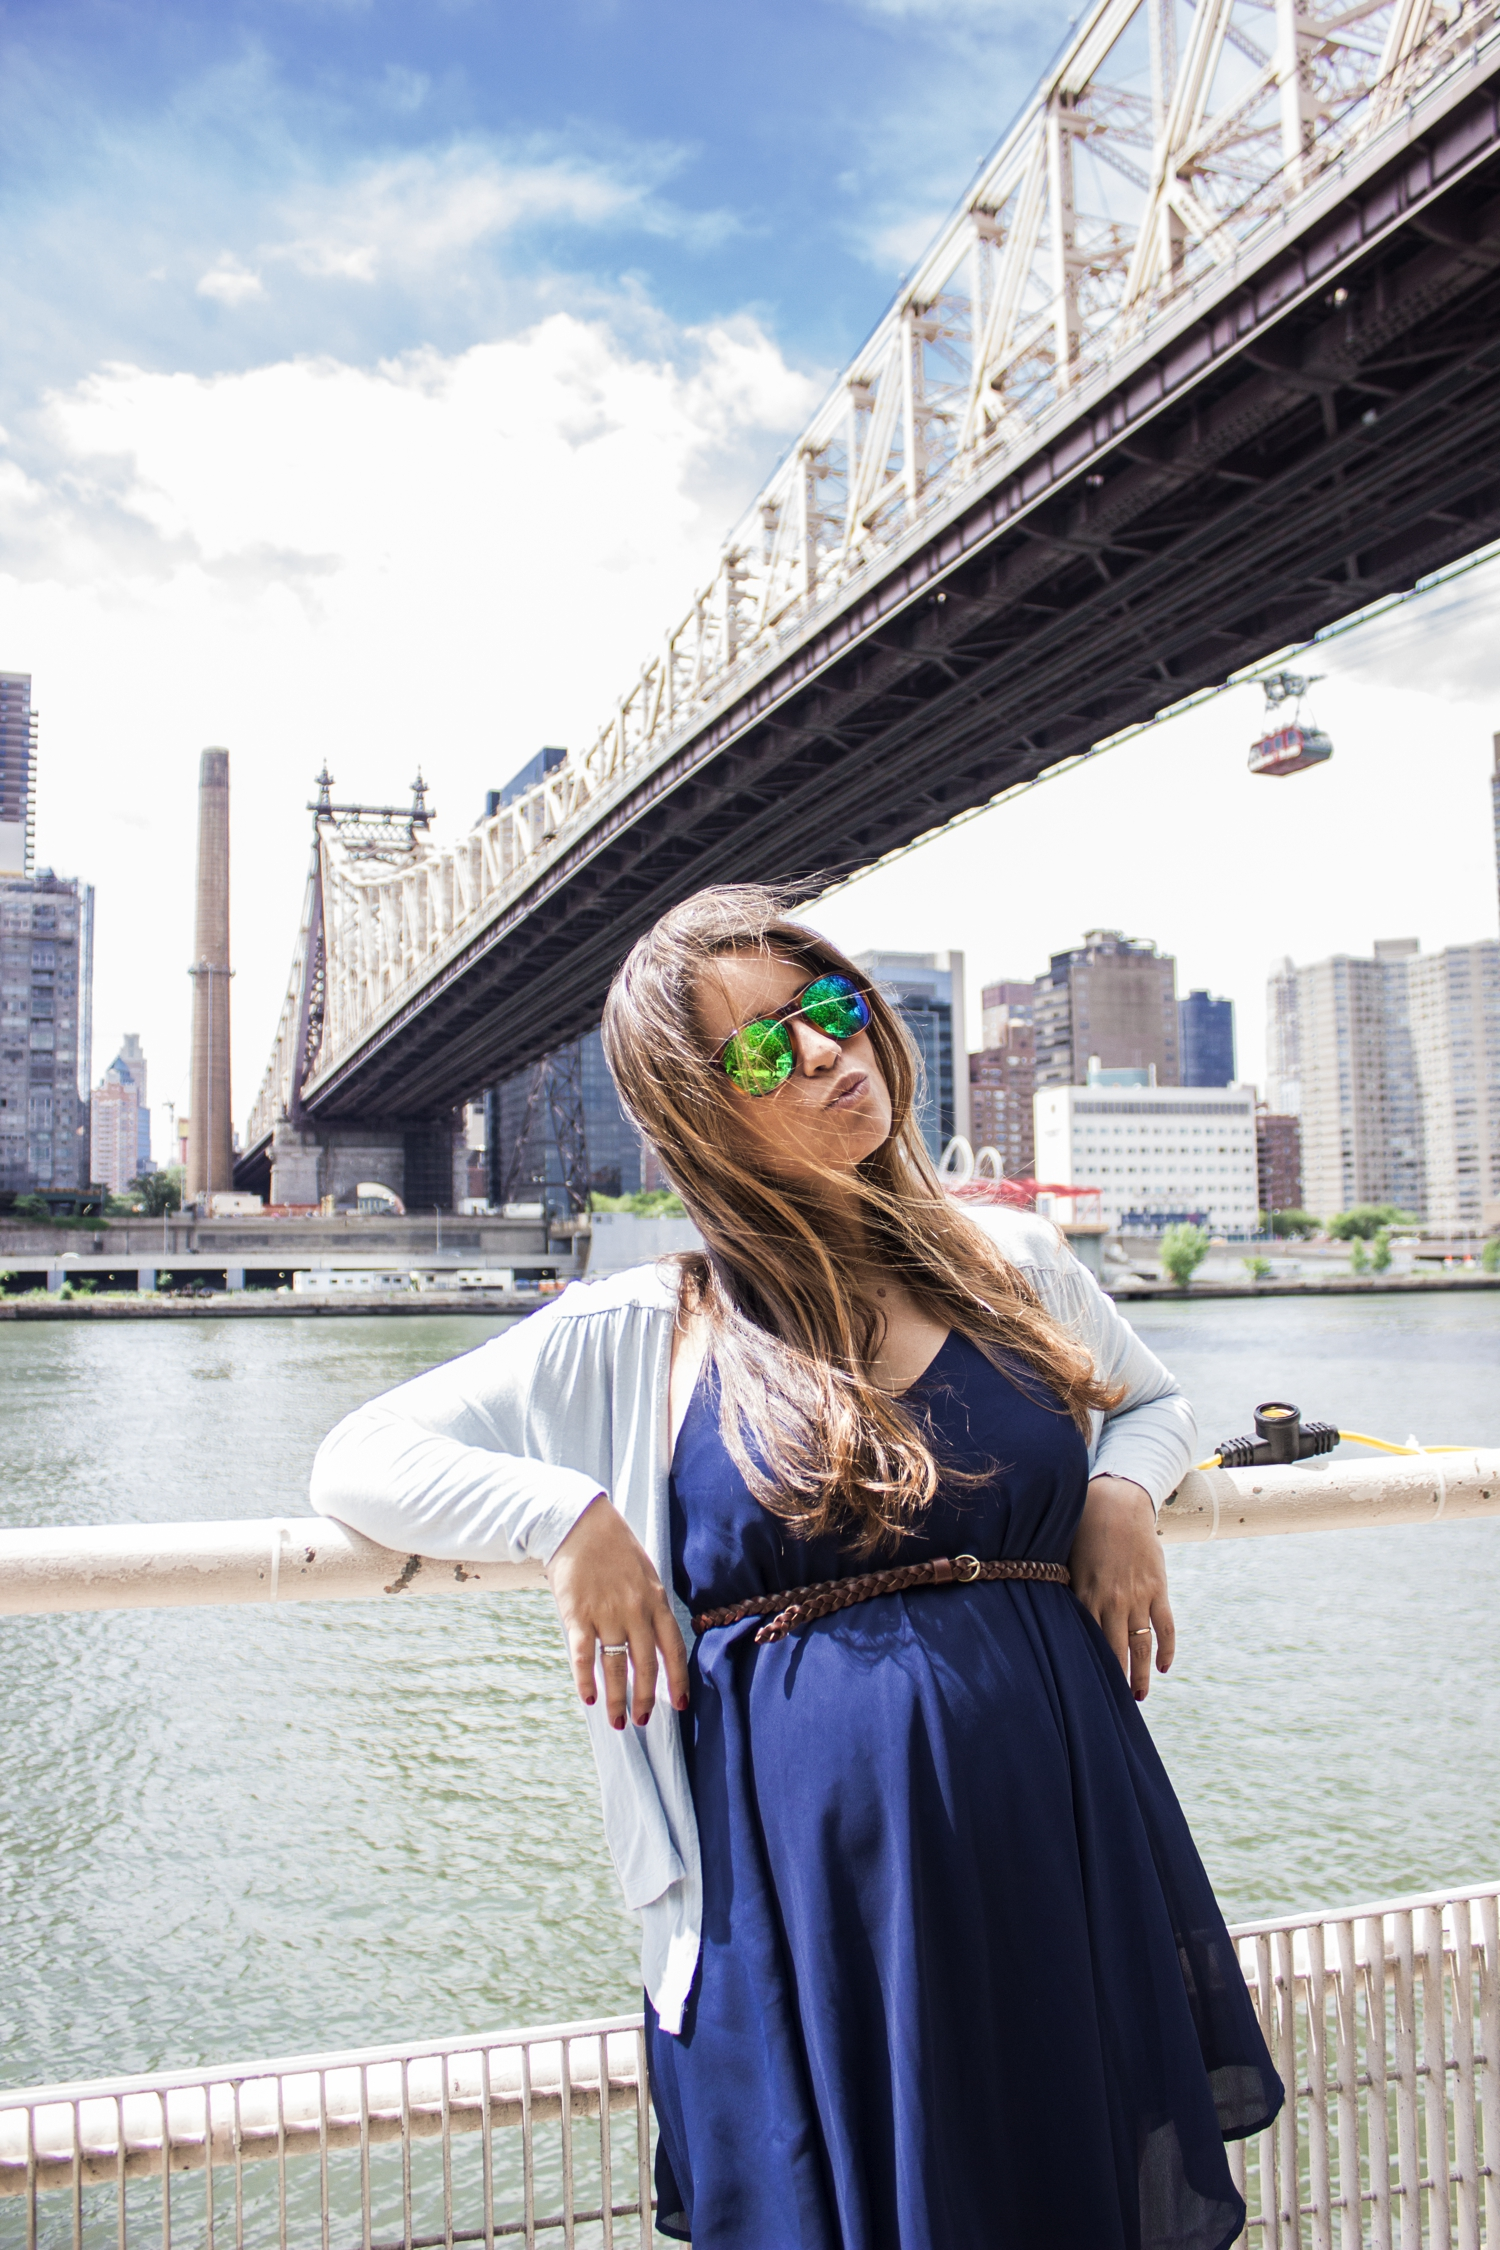 loreto_made_in_style_new_york_travel_blue_dress_empire_state_white_vans_leather-39